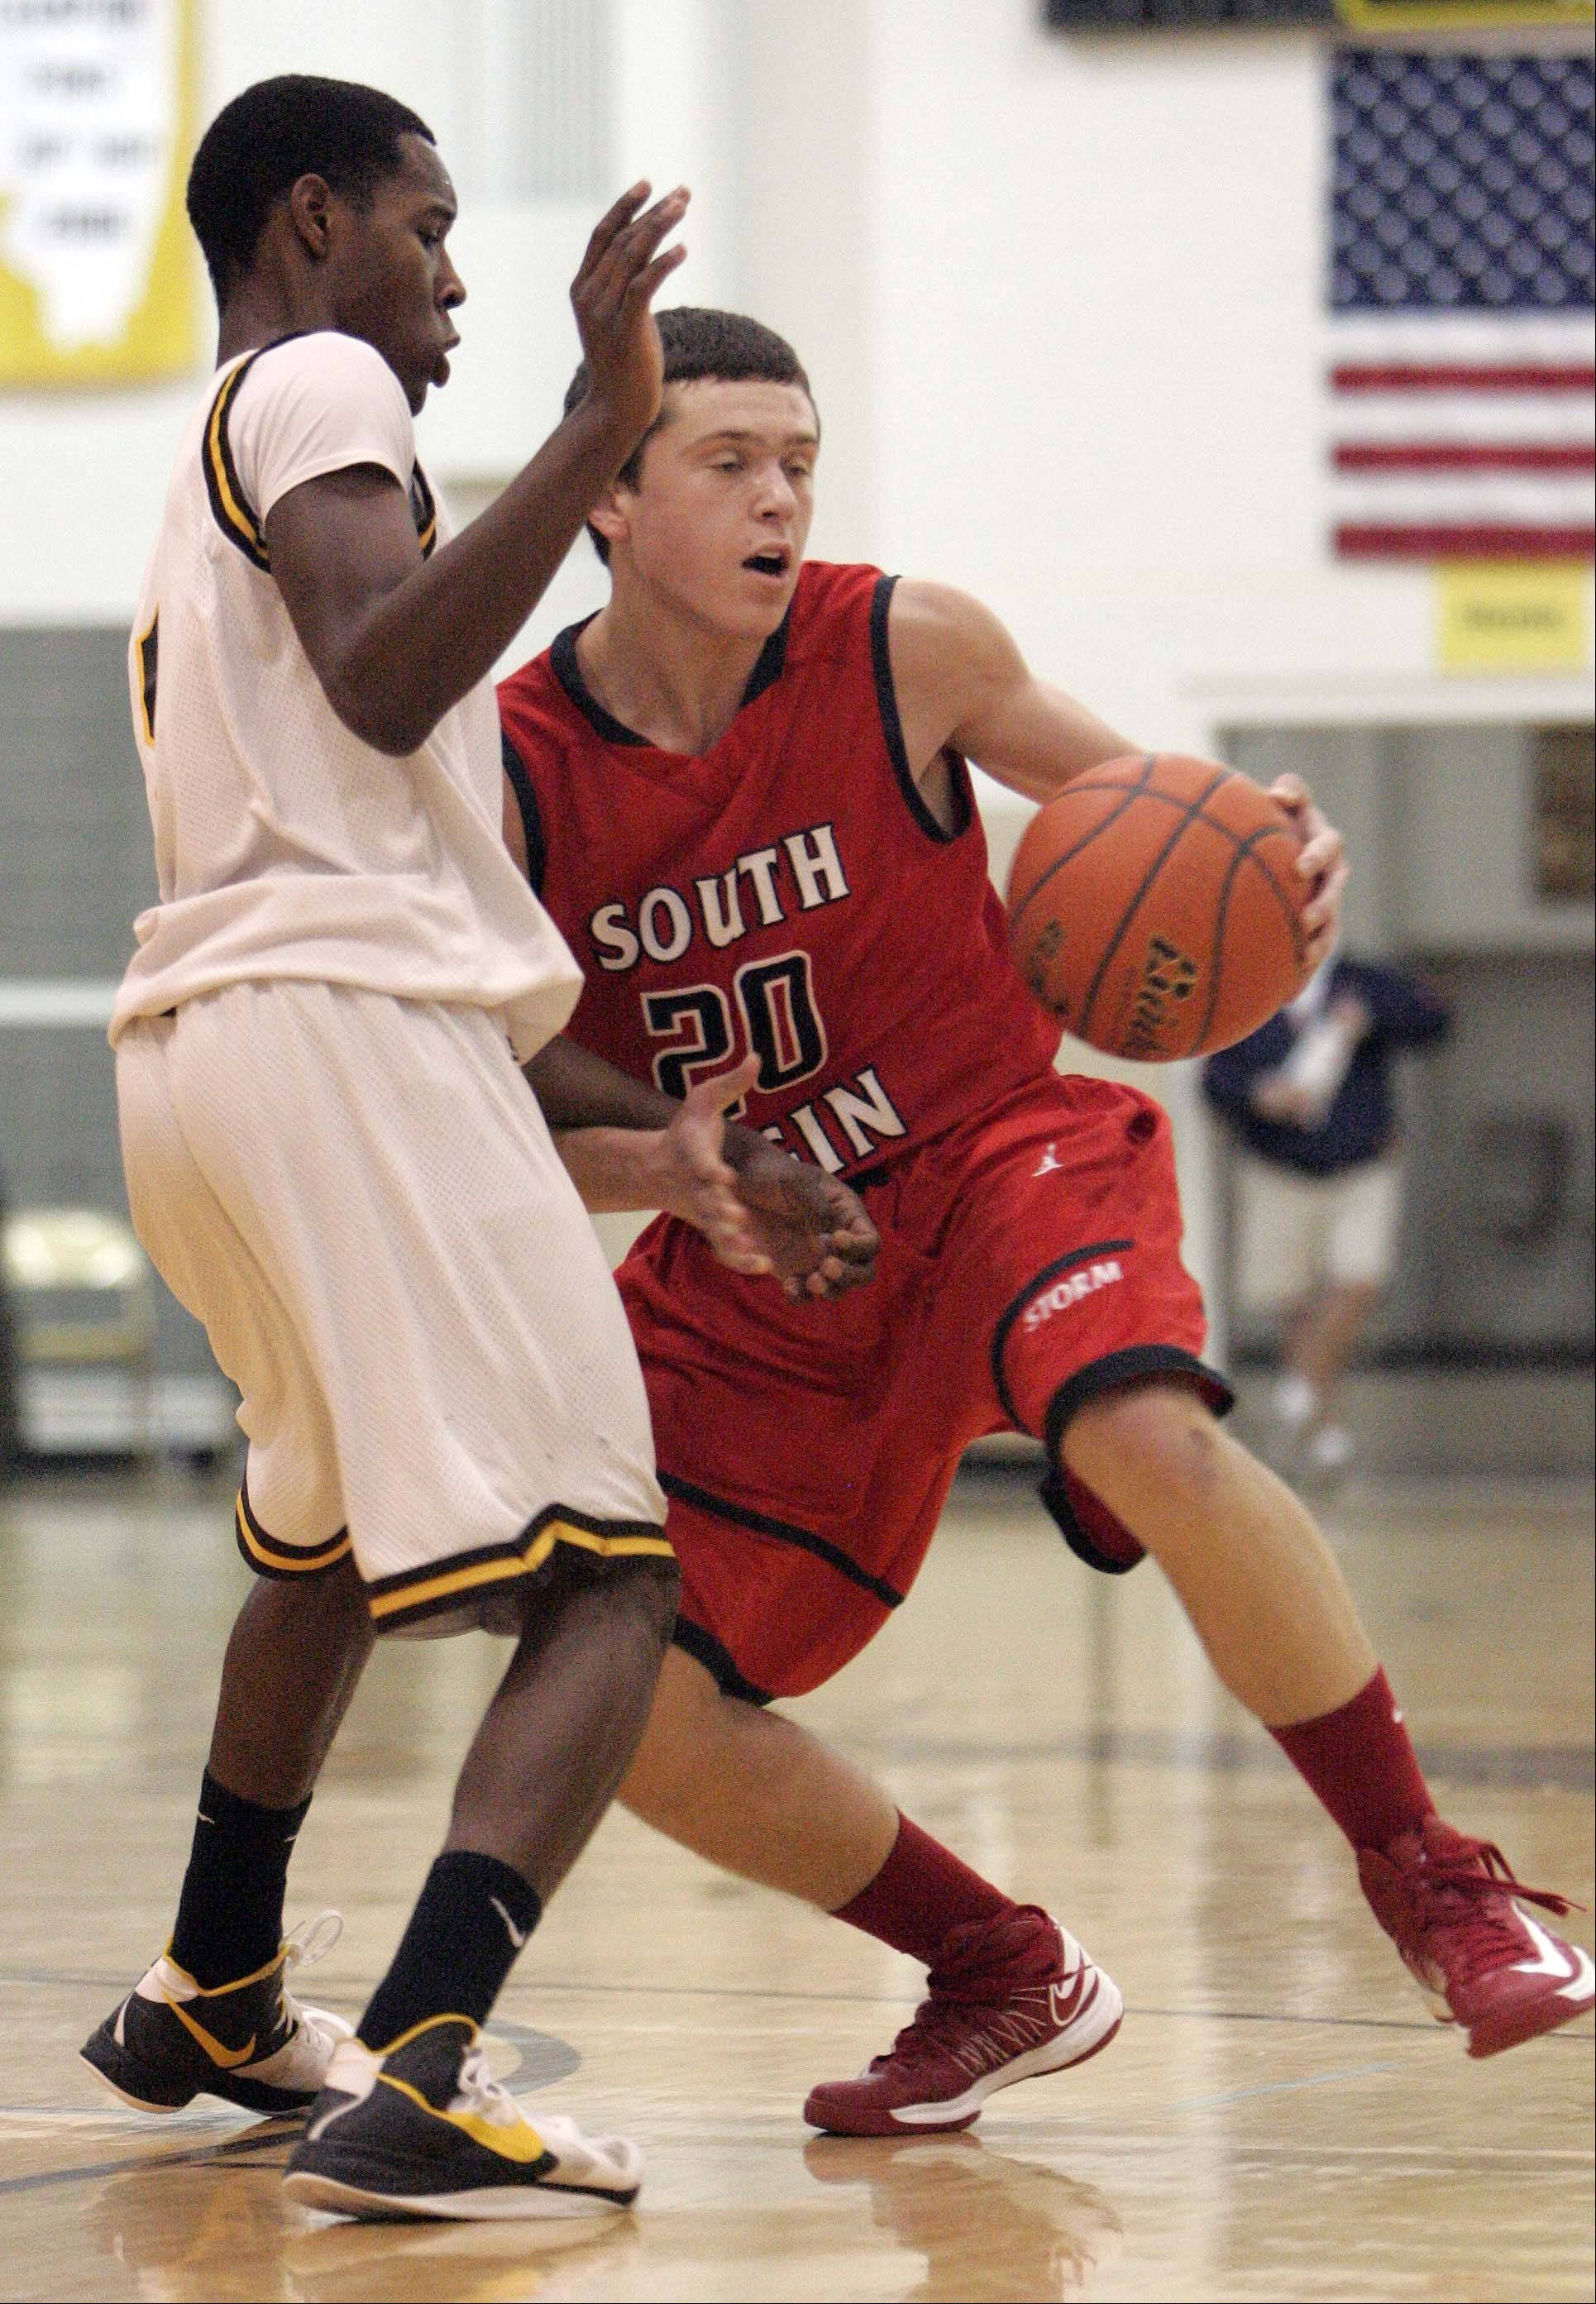 Images from the South Elgin vs. Jacobs boys basketball game Friday, December 28, 2012 in Algonquin.